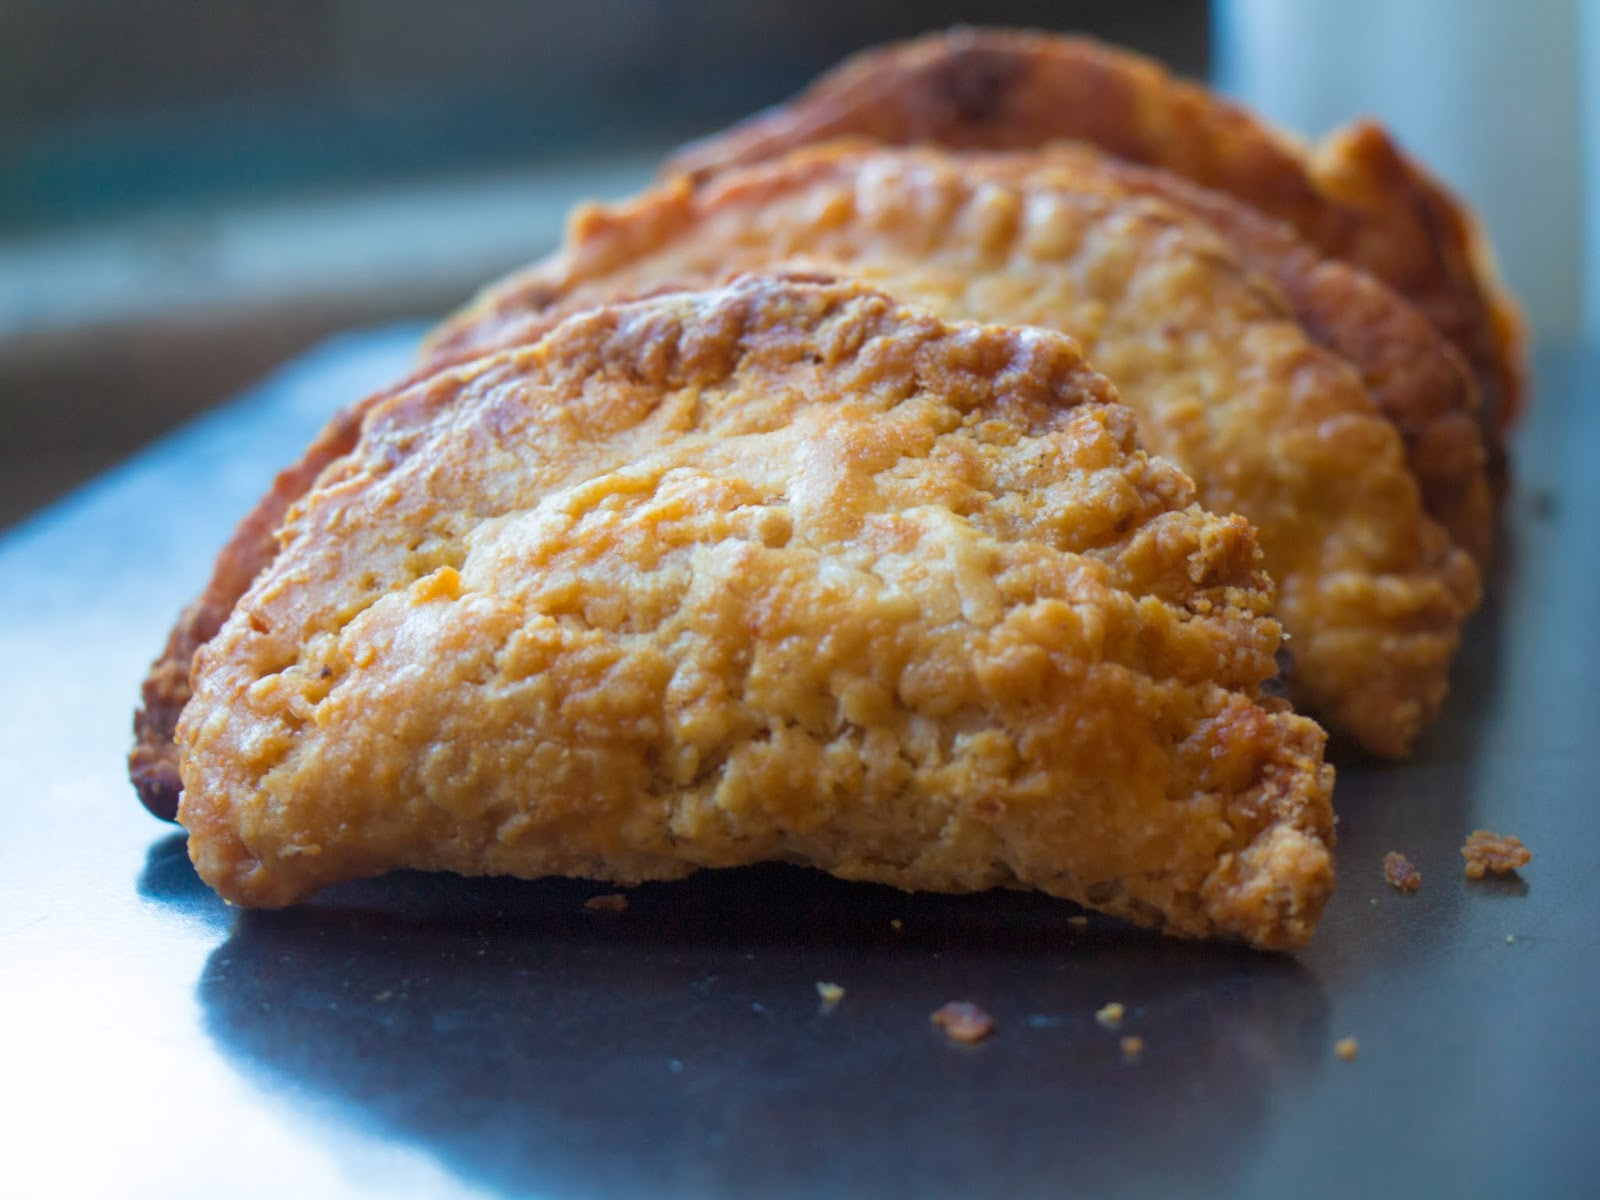 Buffalo Chicken Fried Pies in a Row